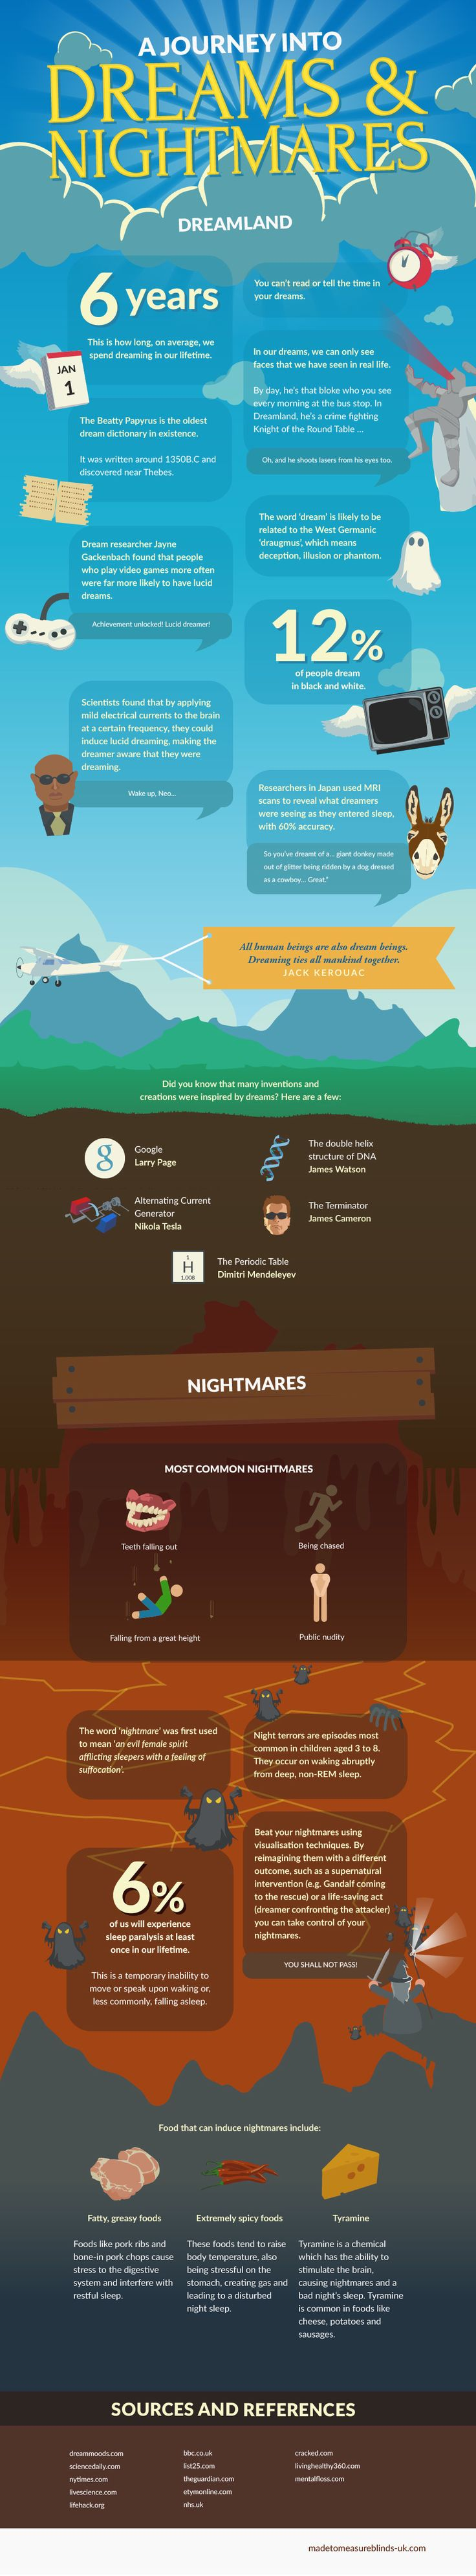 A Journey into Dreams and Nightmares #infographic #Dream #Nightmares